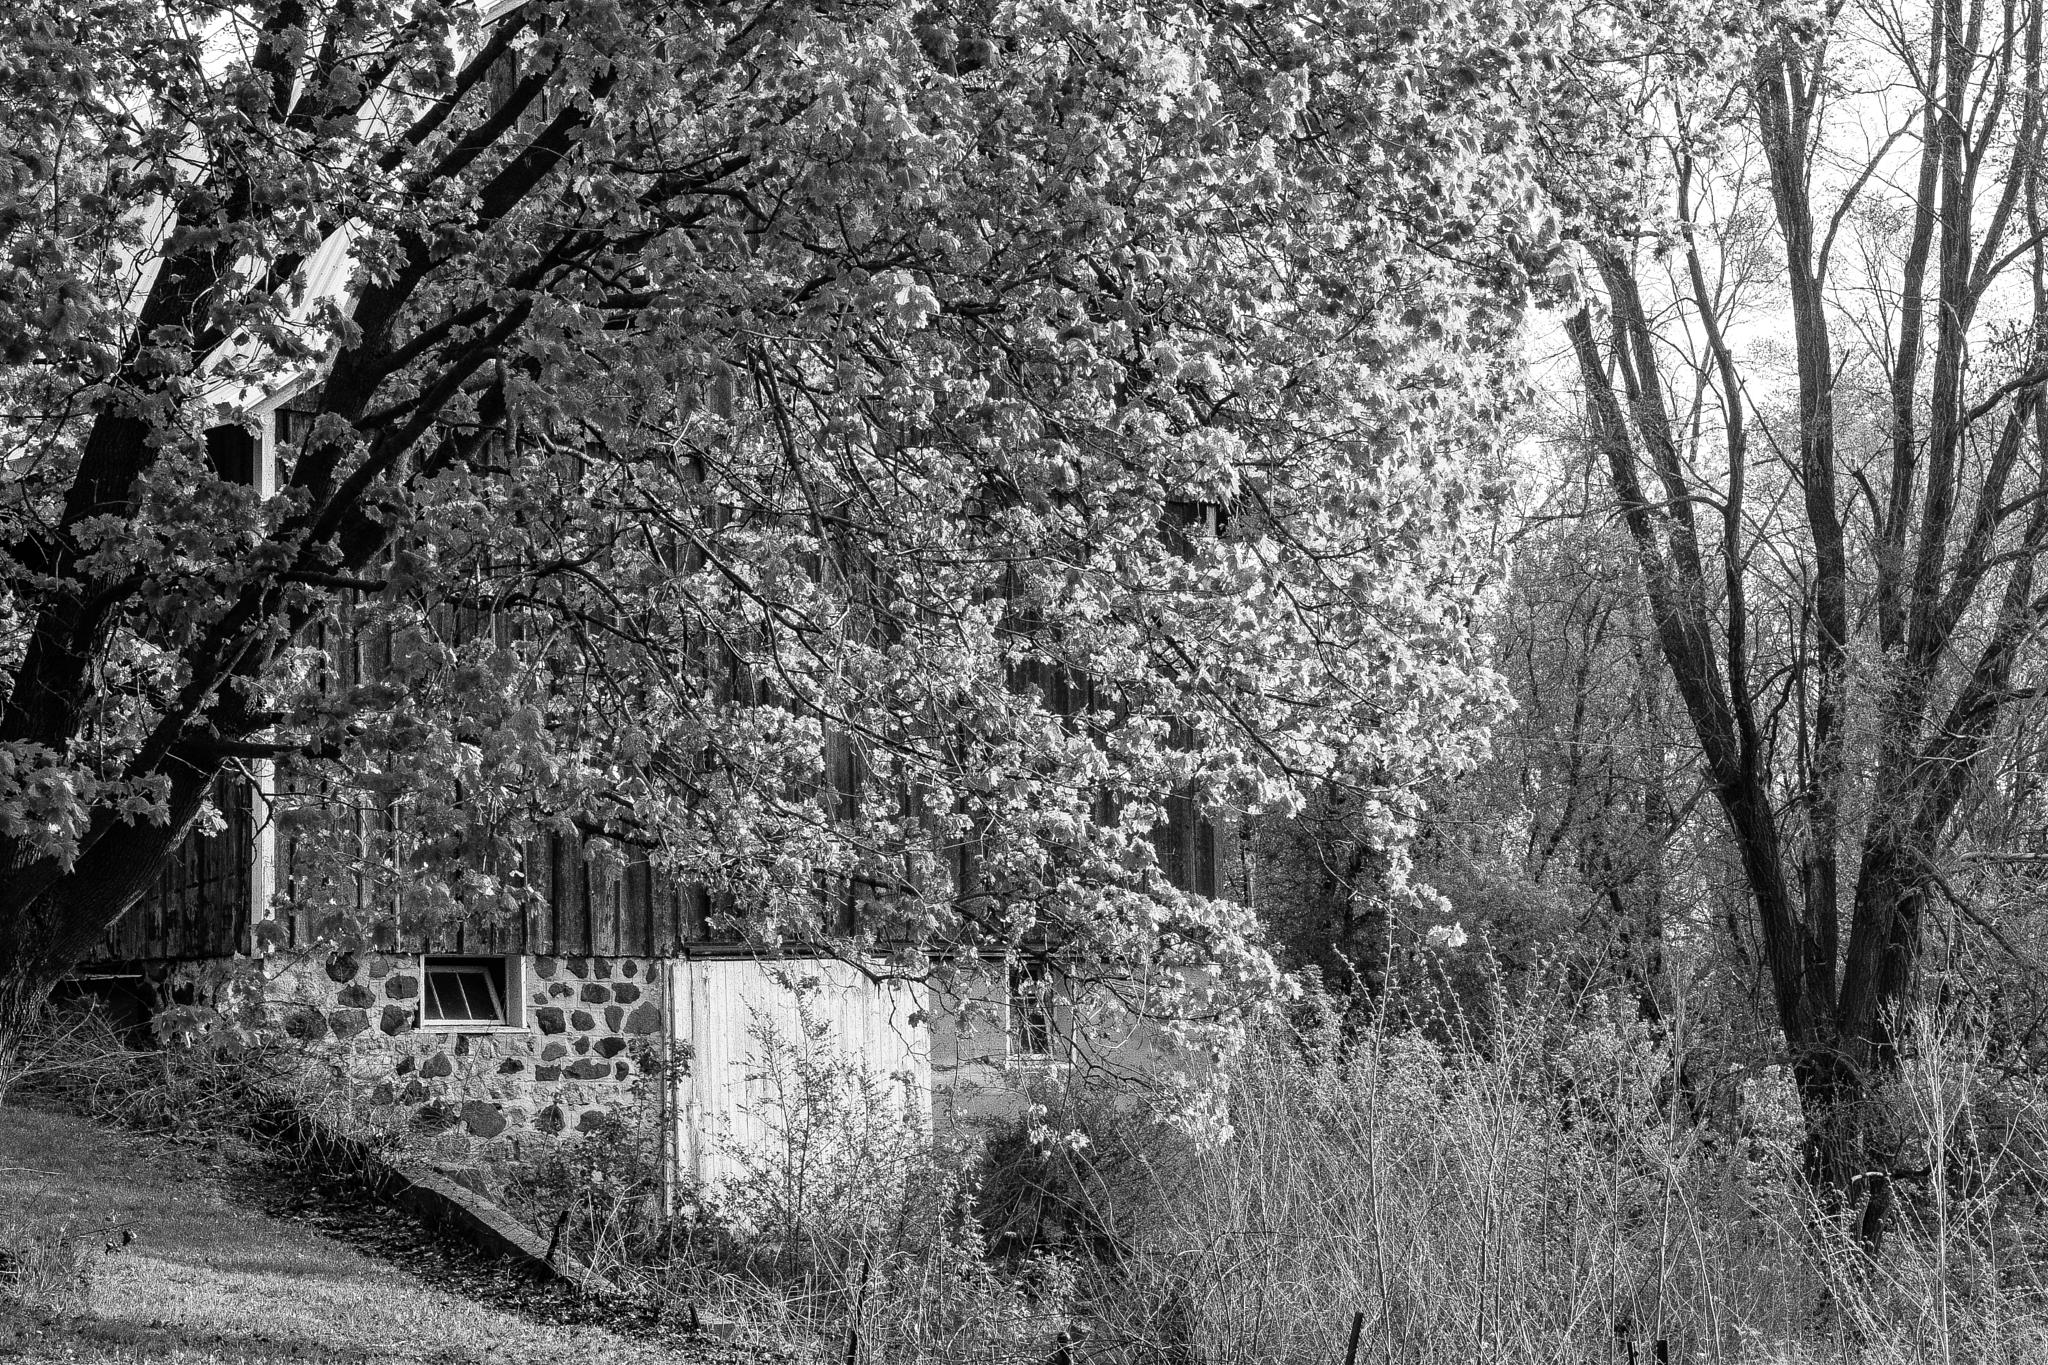 spring tree in front of an old barn in black and white by jason.lockhart.9